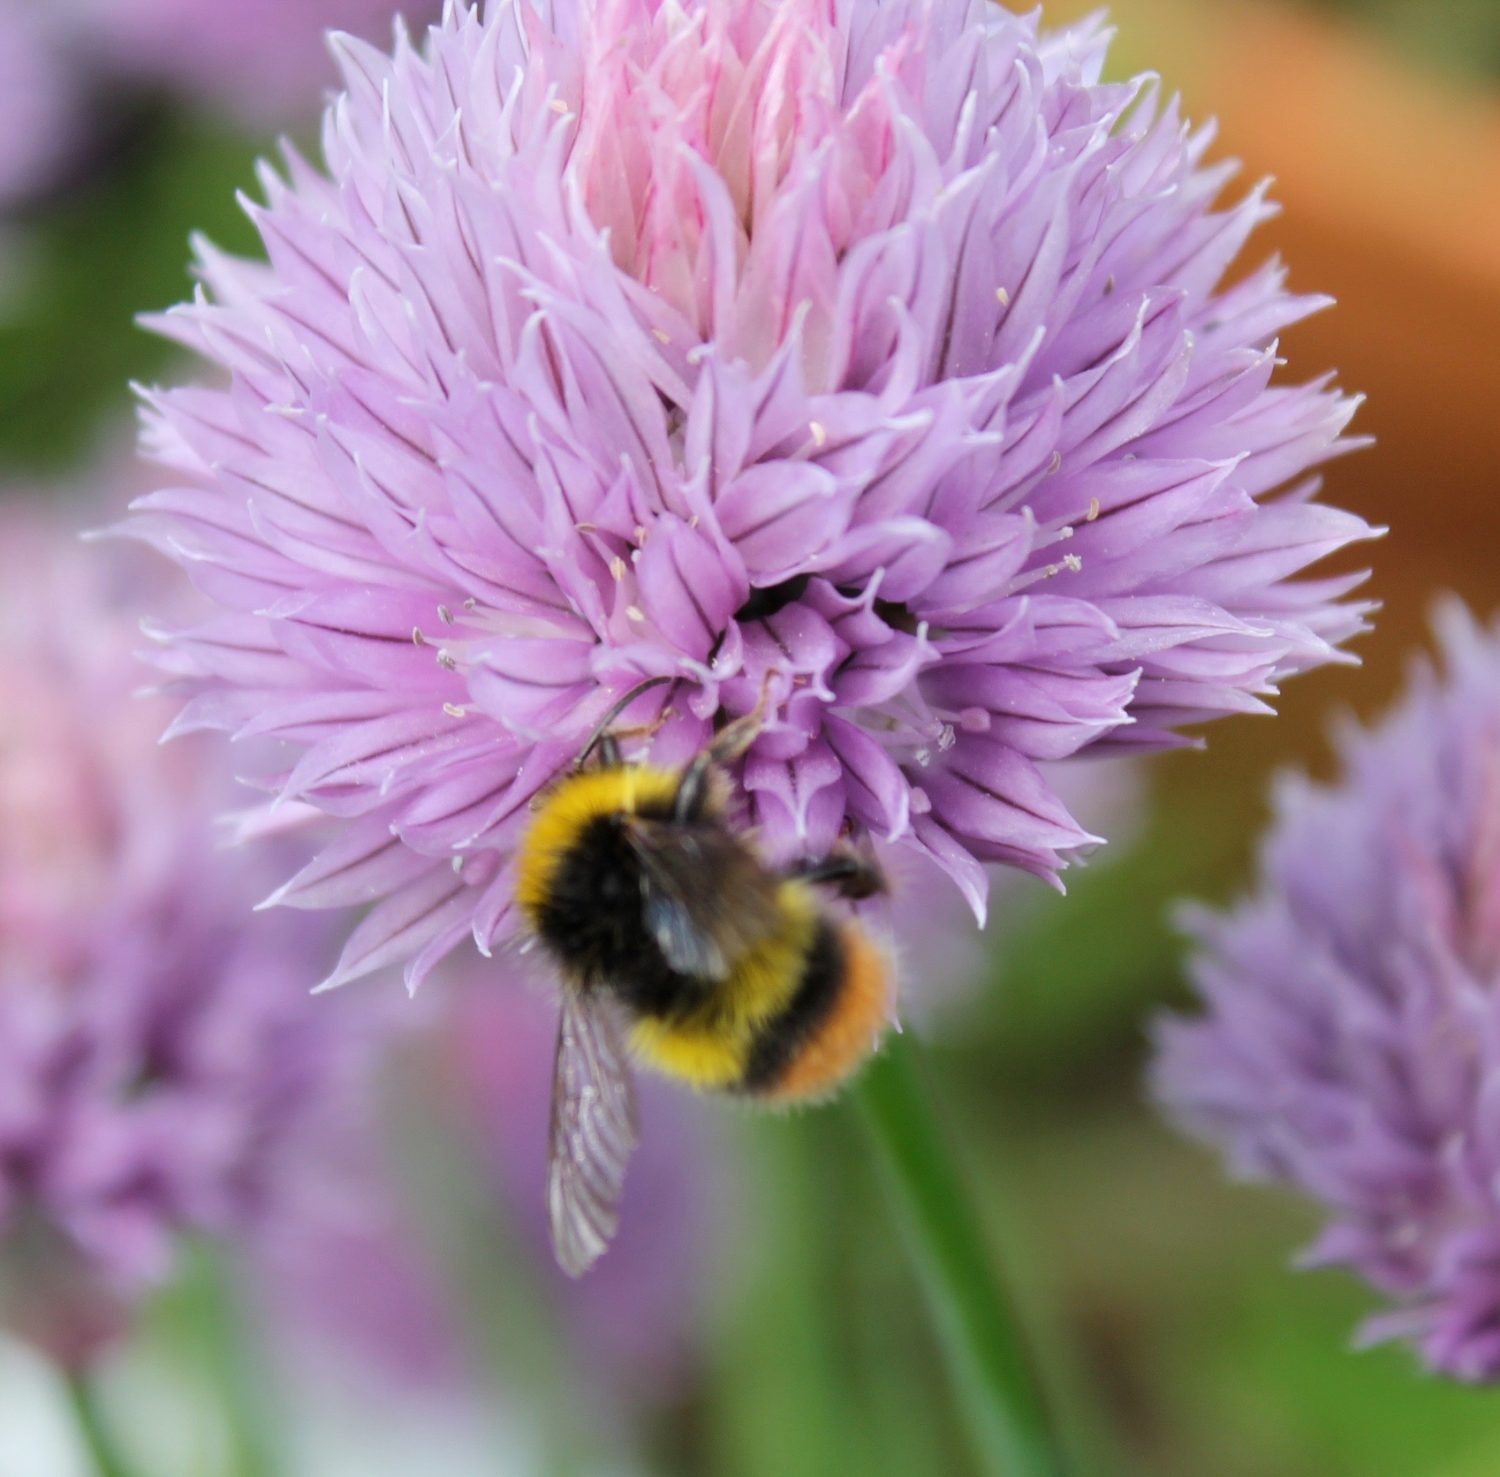 Chives and other alliums are nectar rich